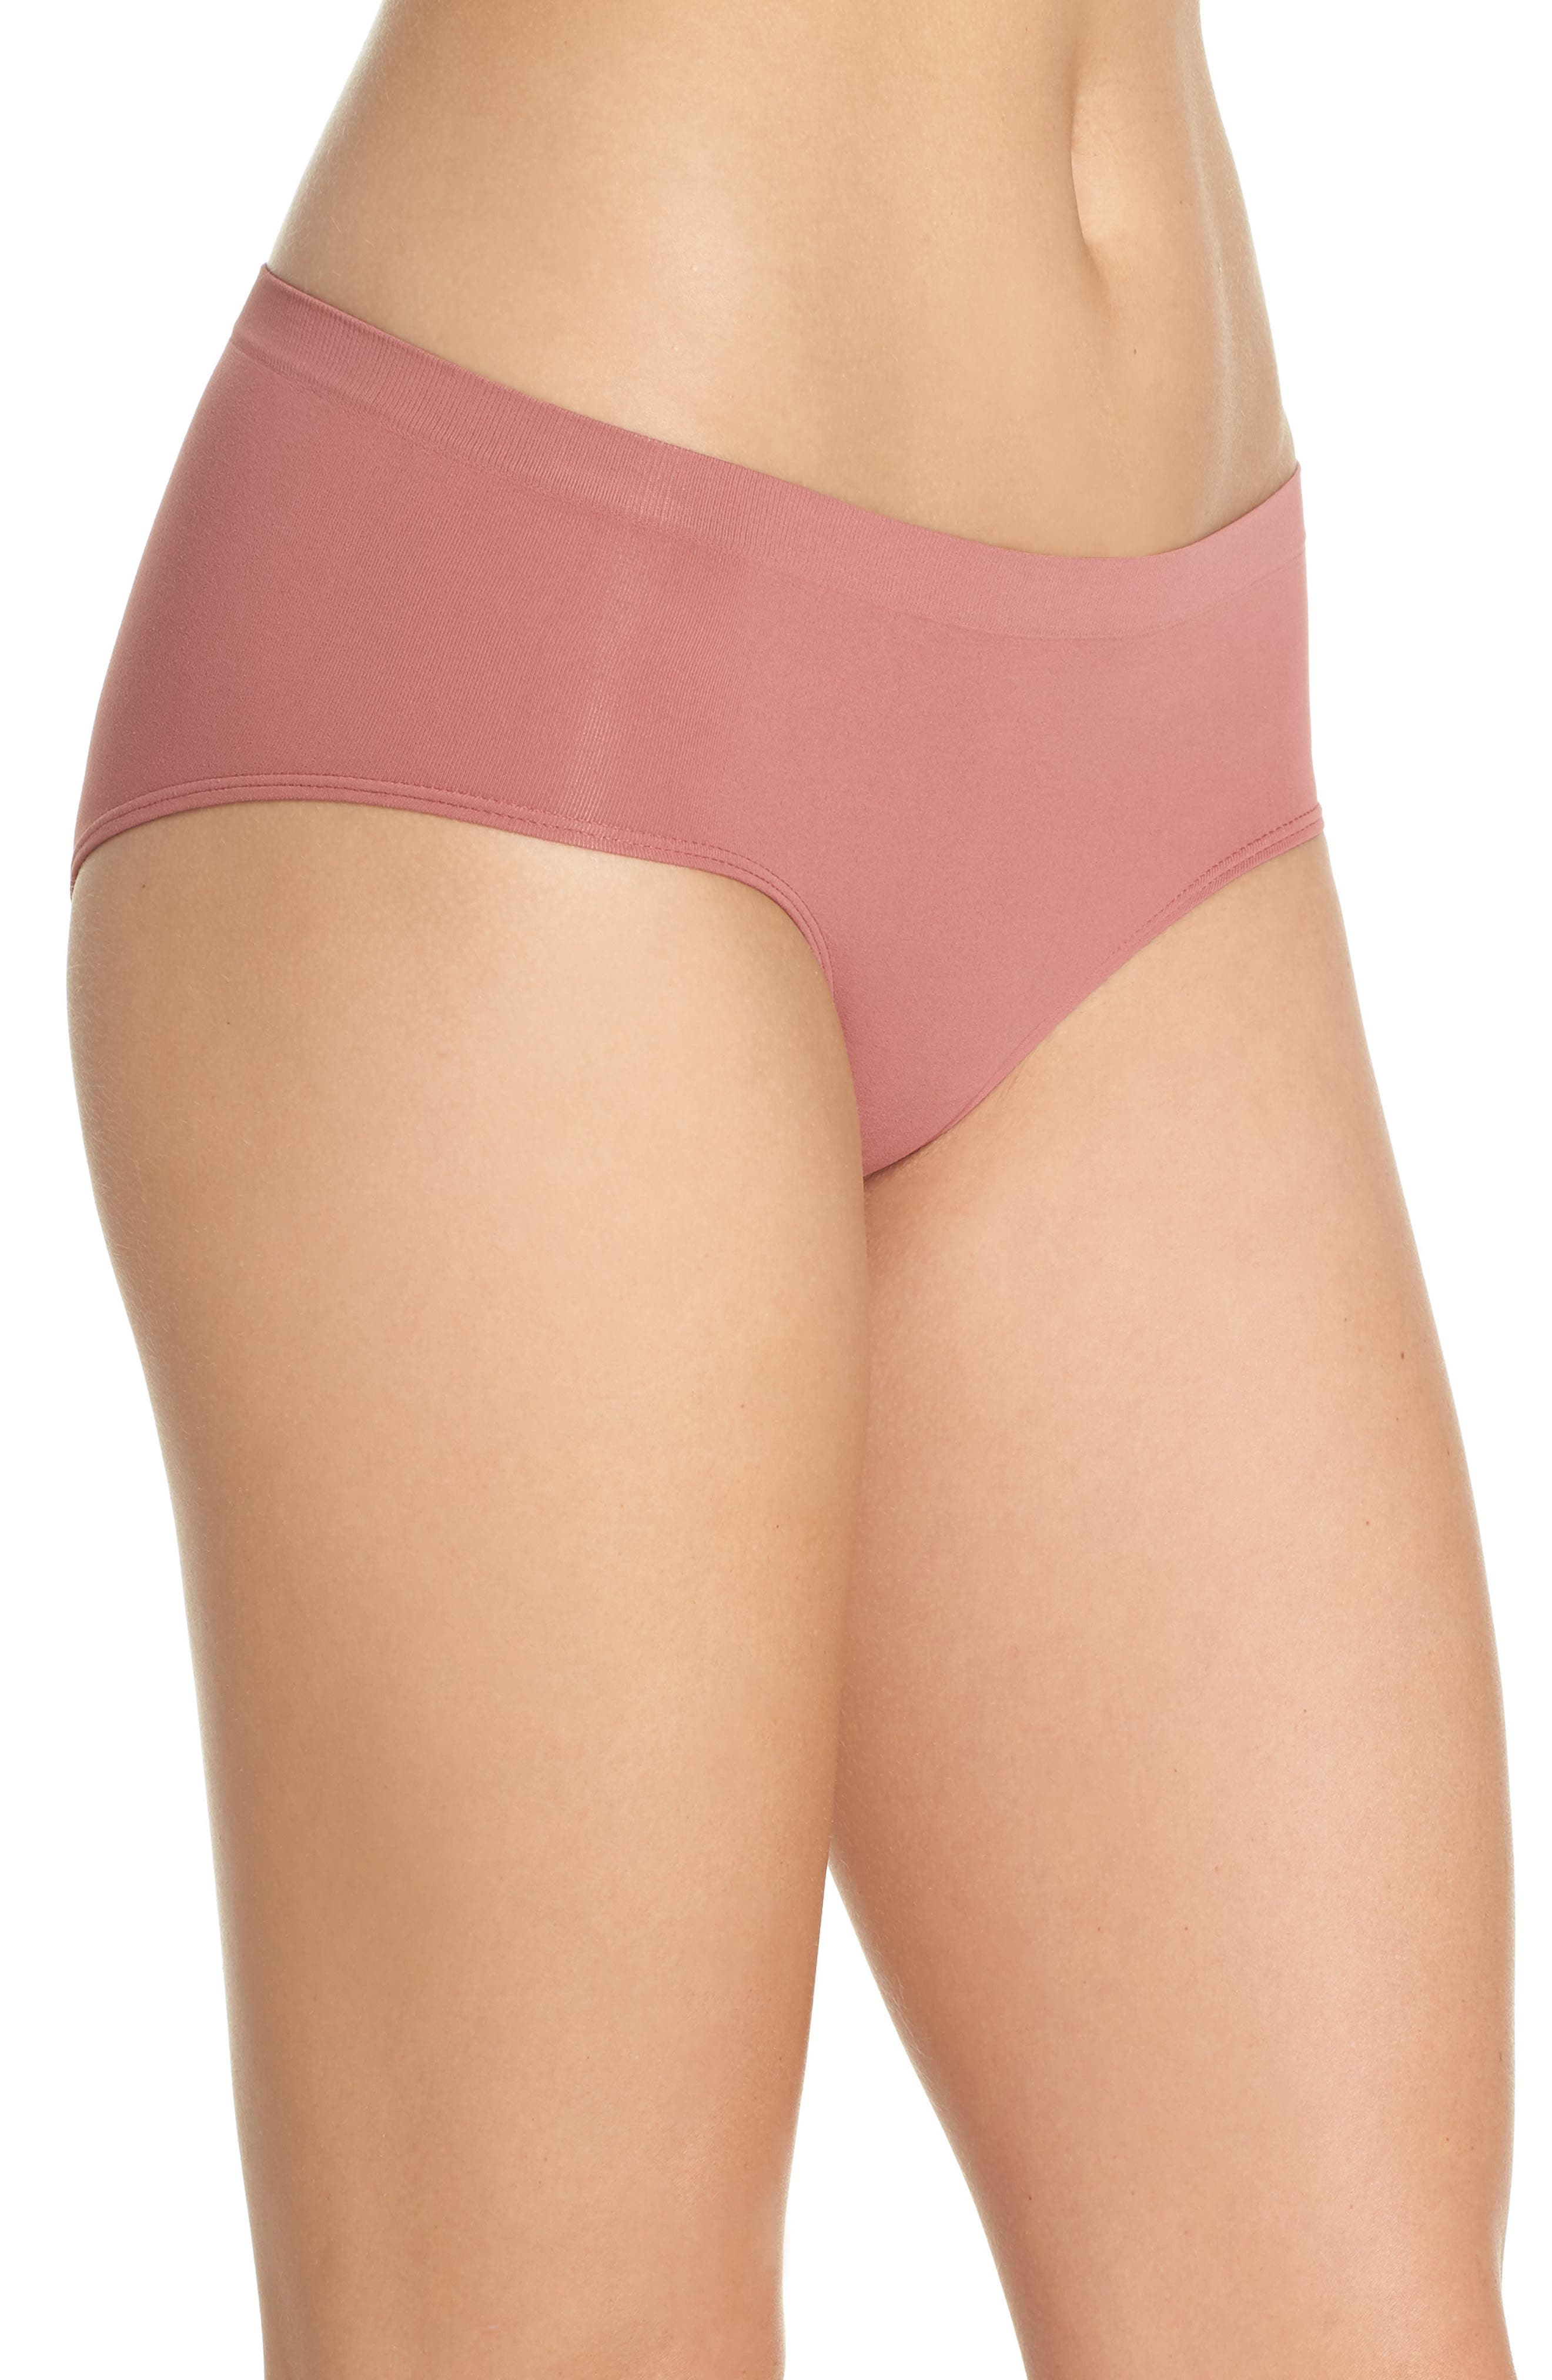 Seamless Hipster Briefs,                             Alternate thumbnail 3, color,                             Pink Taffy